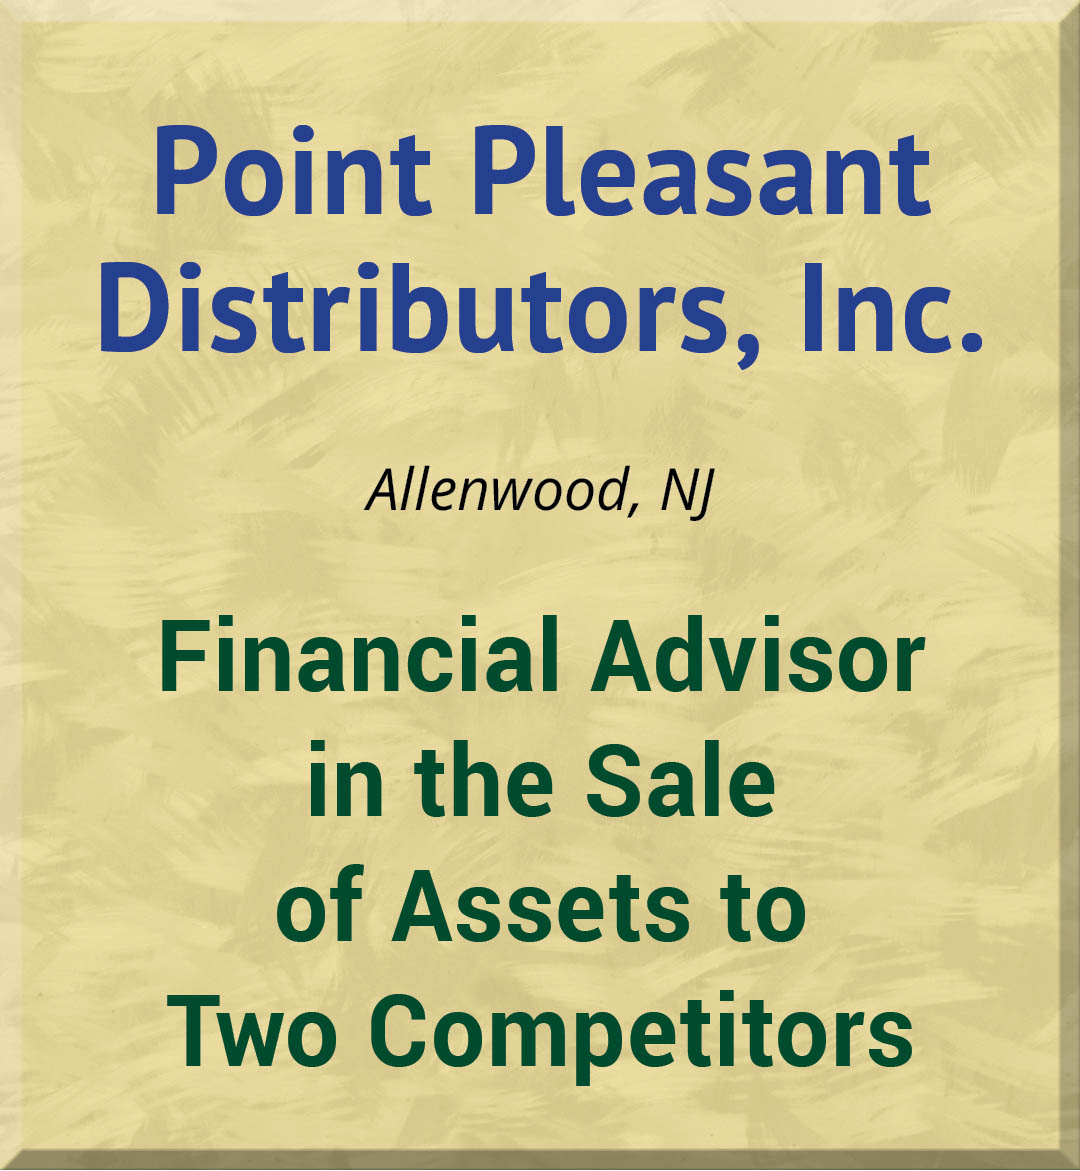 Point Pleasant Distributors, Inc.